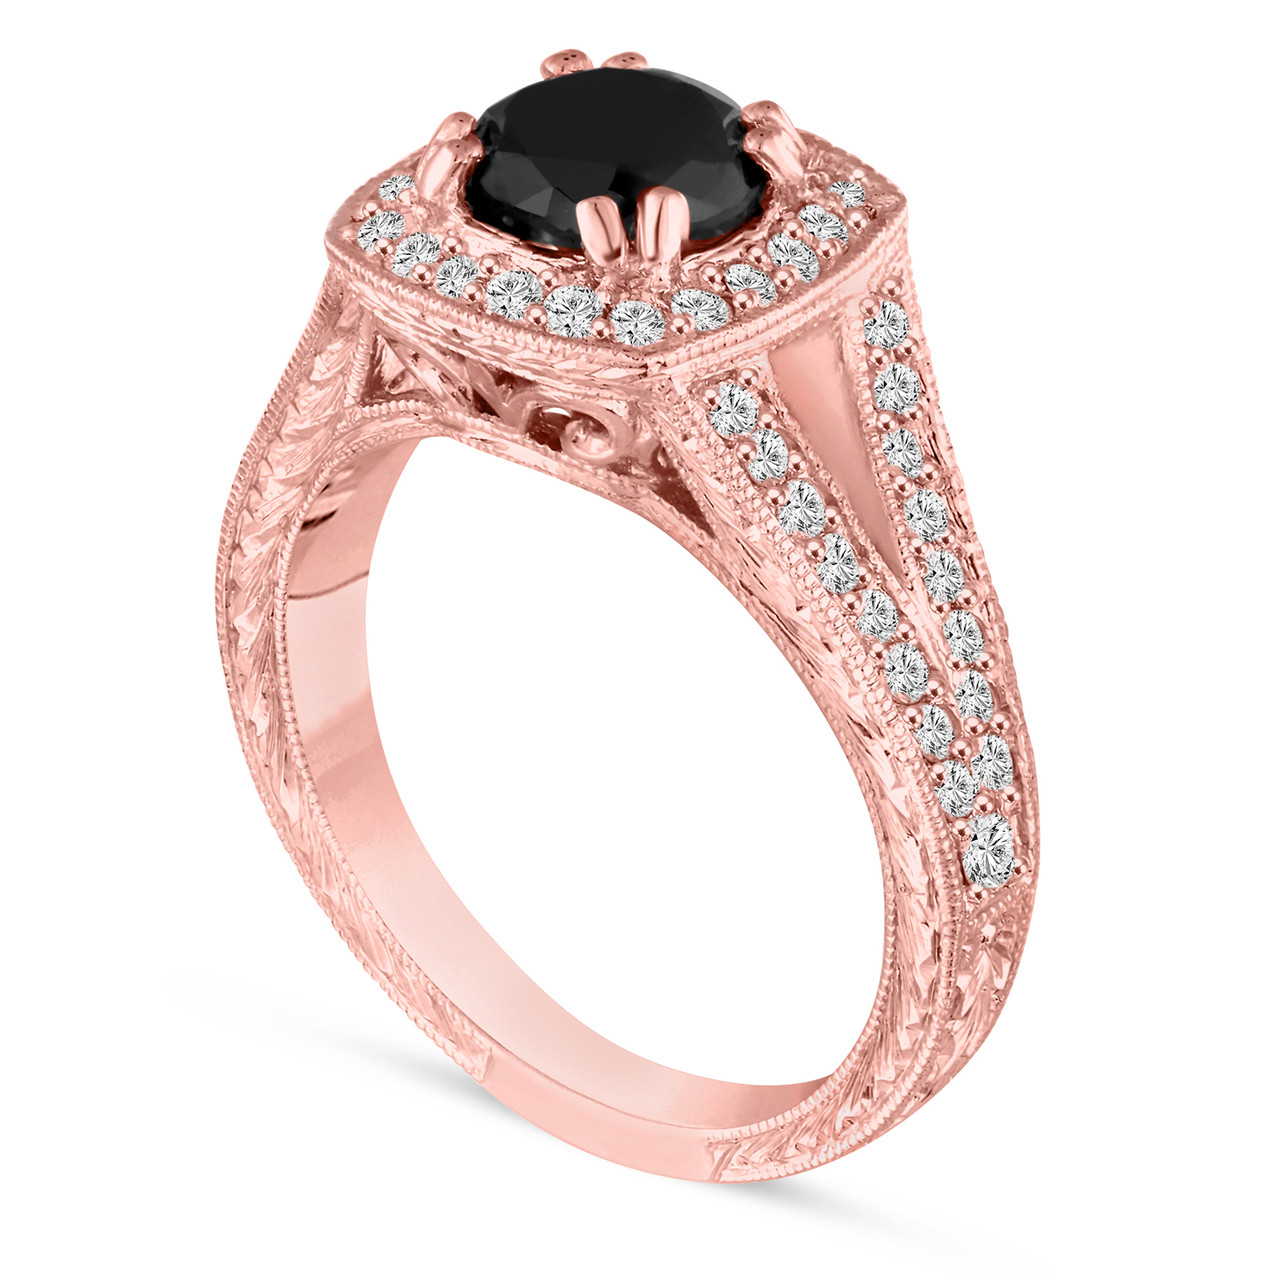 Black Diamond Engagement Ring Hand Engraved 1.60 Carat 14K Rose Gold ...